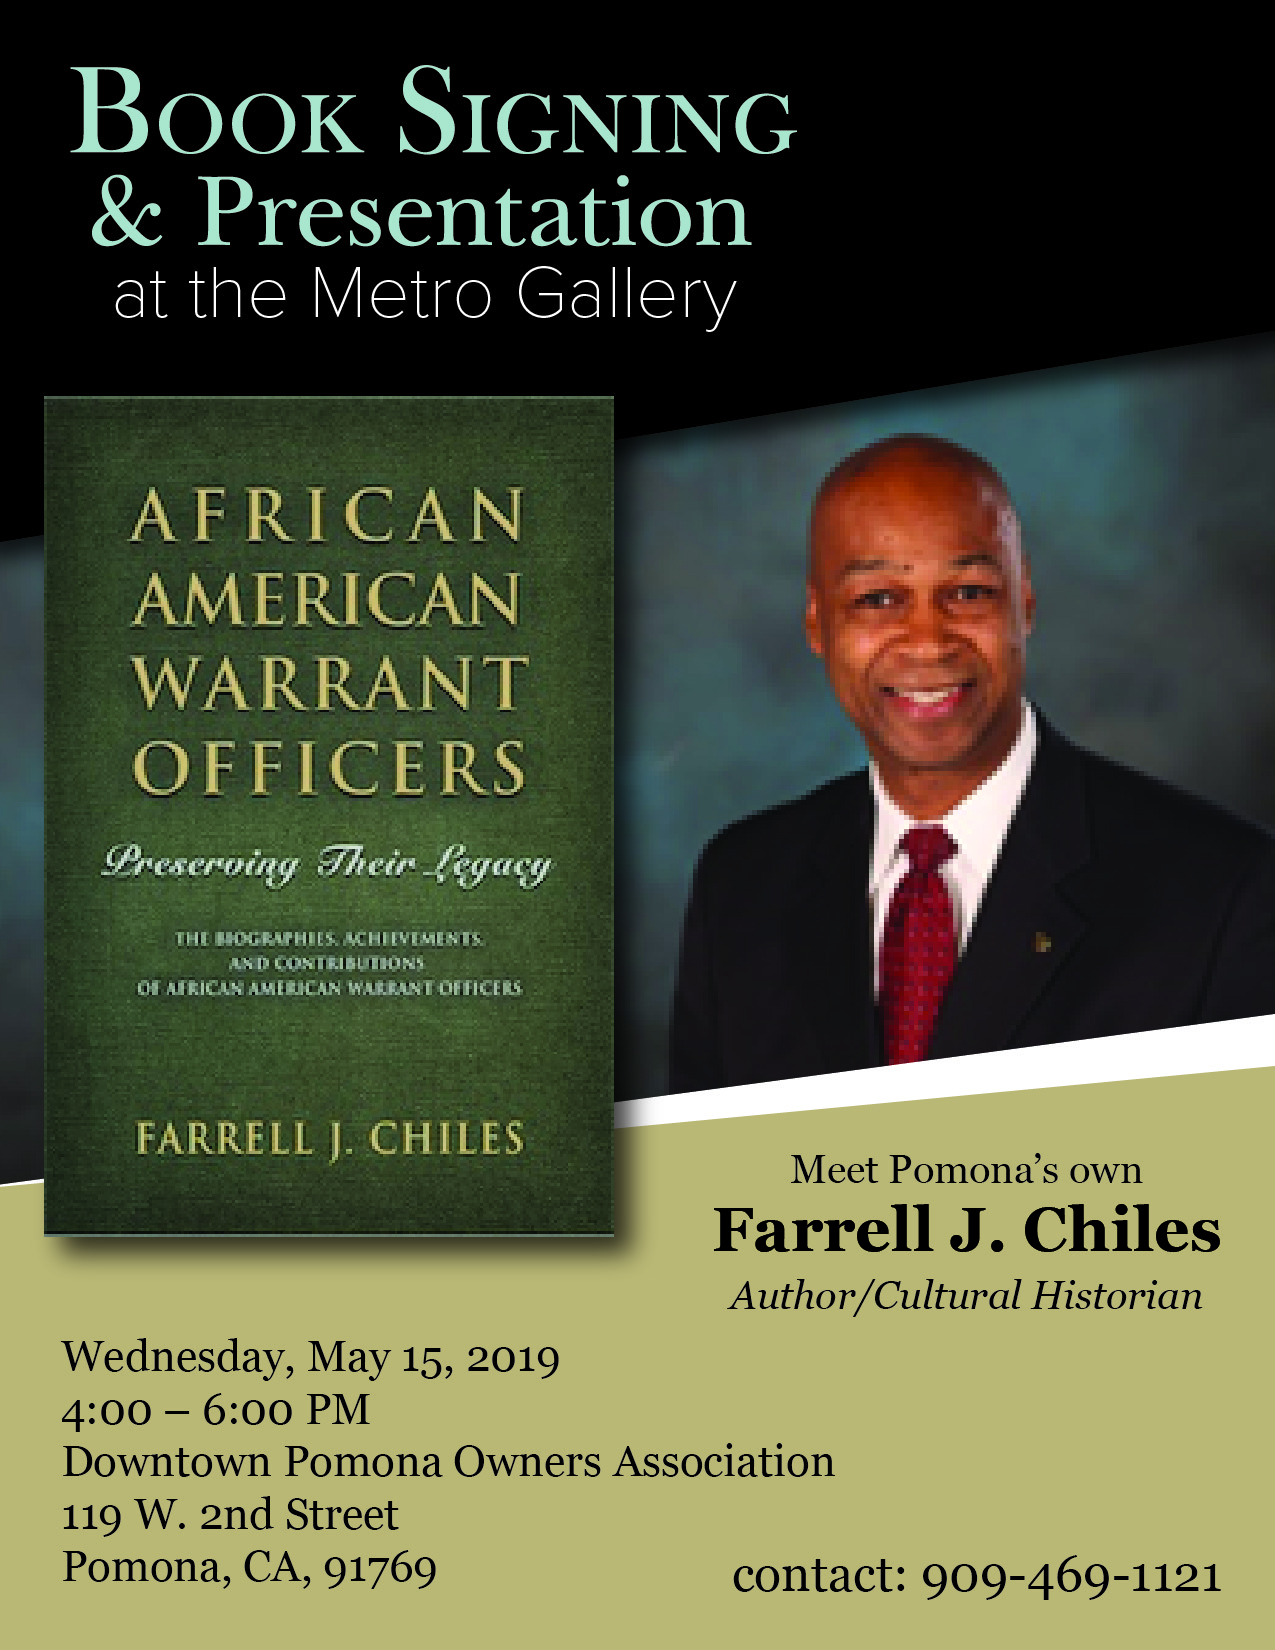 Wednesday, May 15, 4pm-6pm - Author and Cultural Historian Farrel J. Chiles will be giving a book signing and presentation.